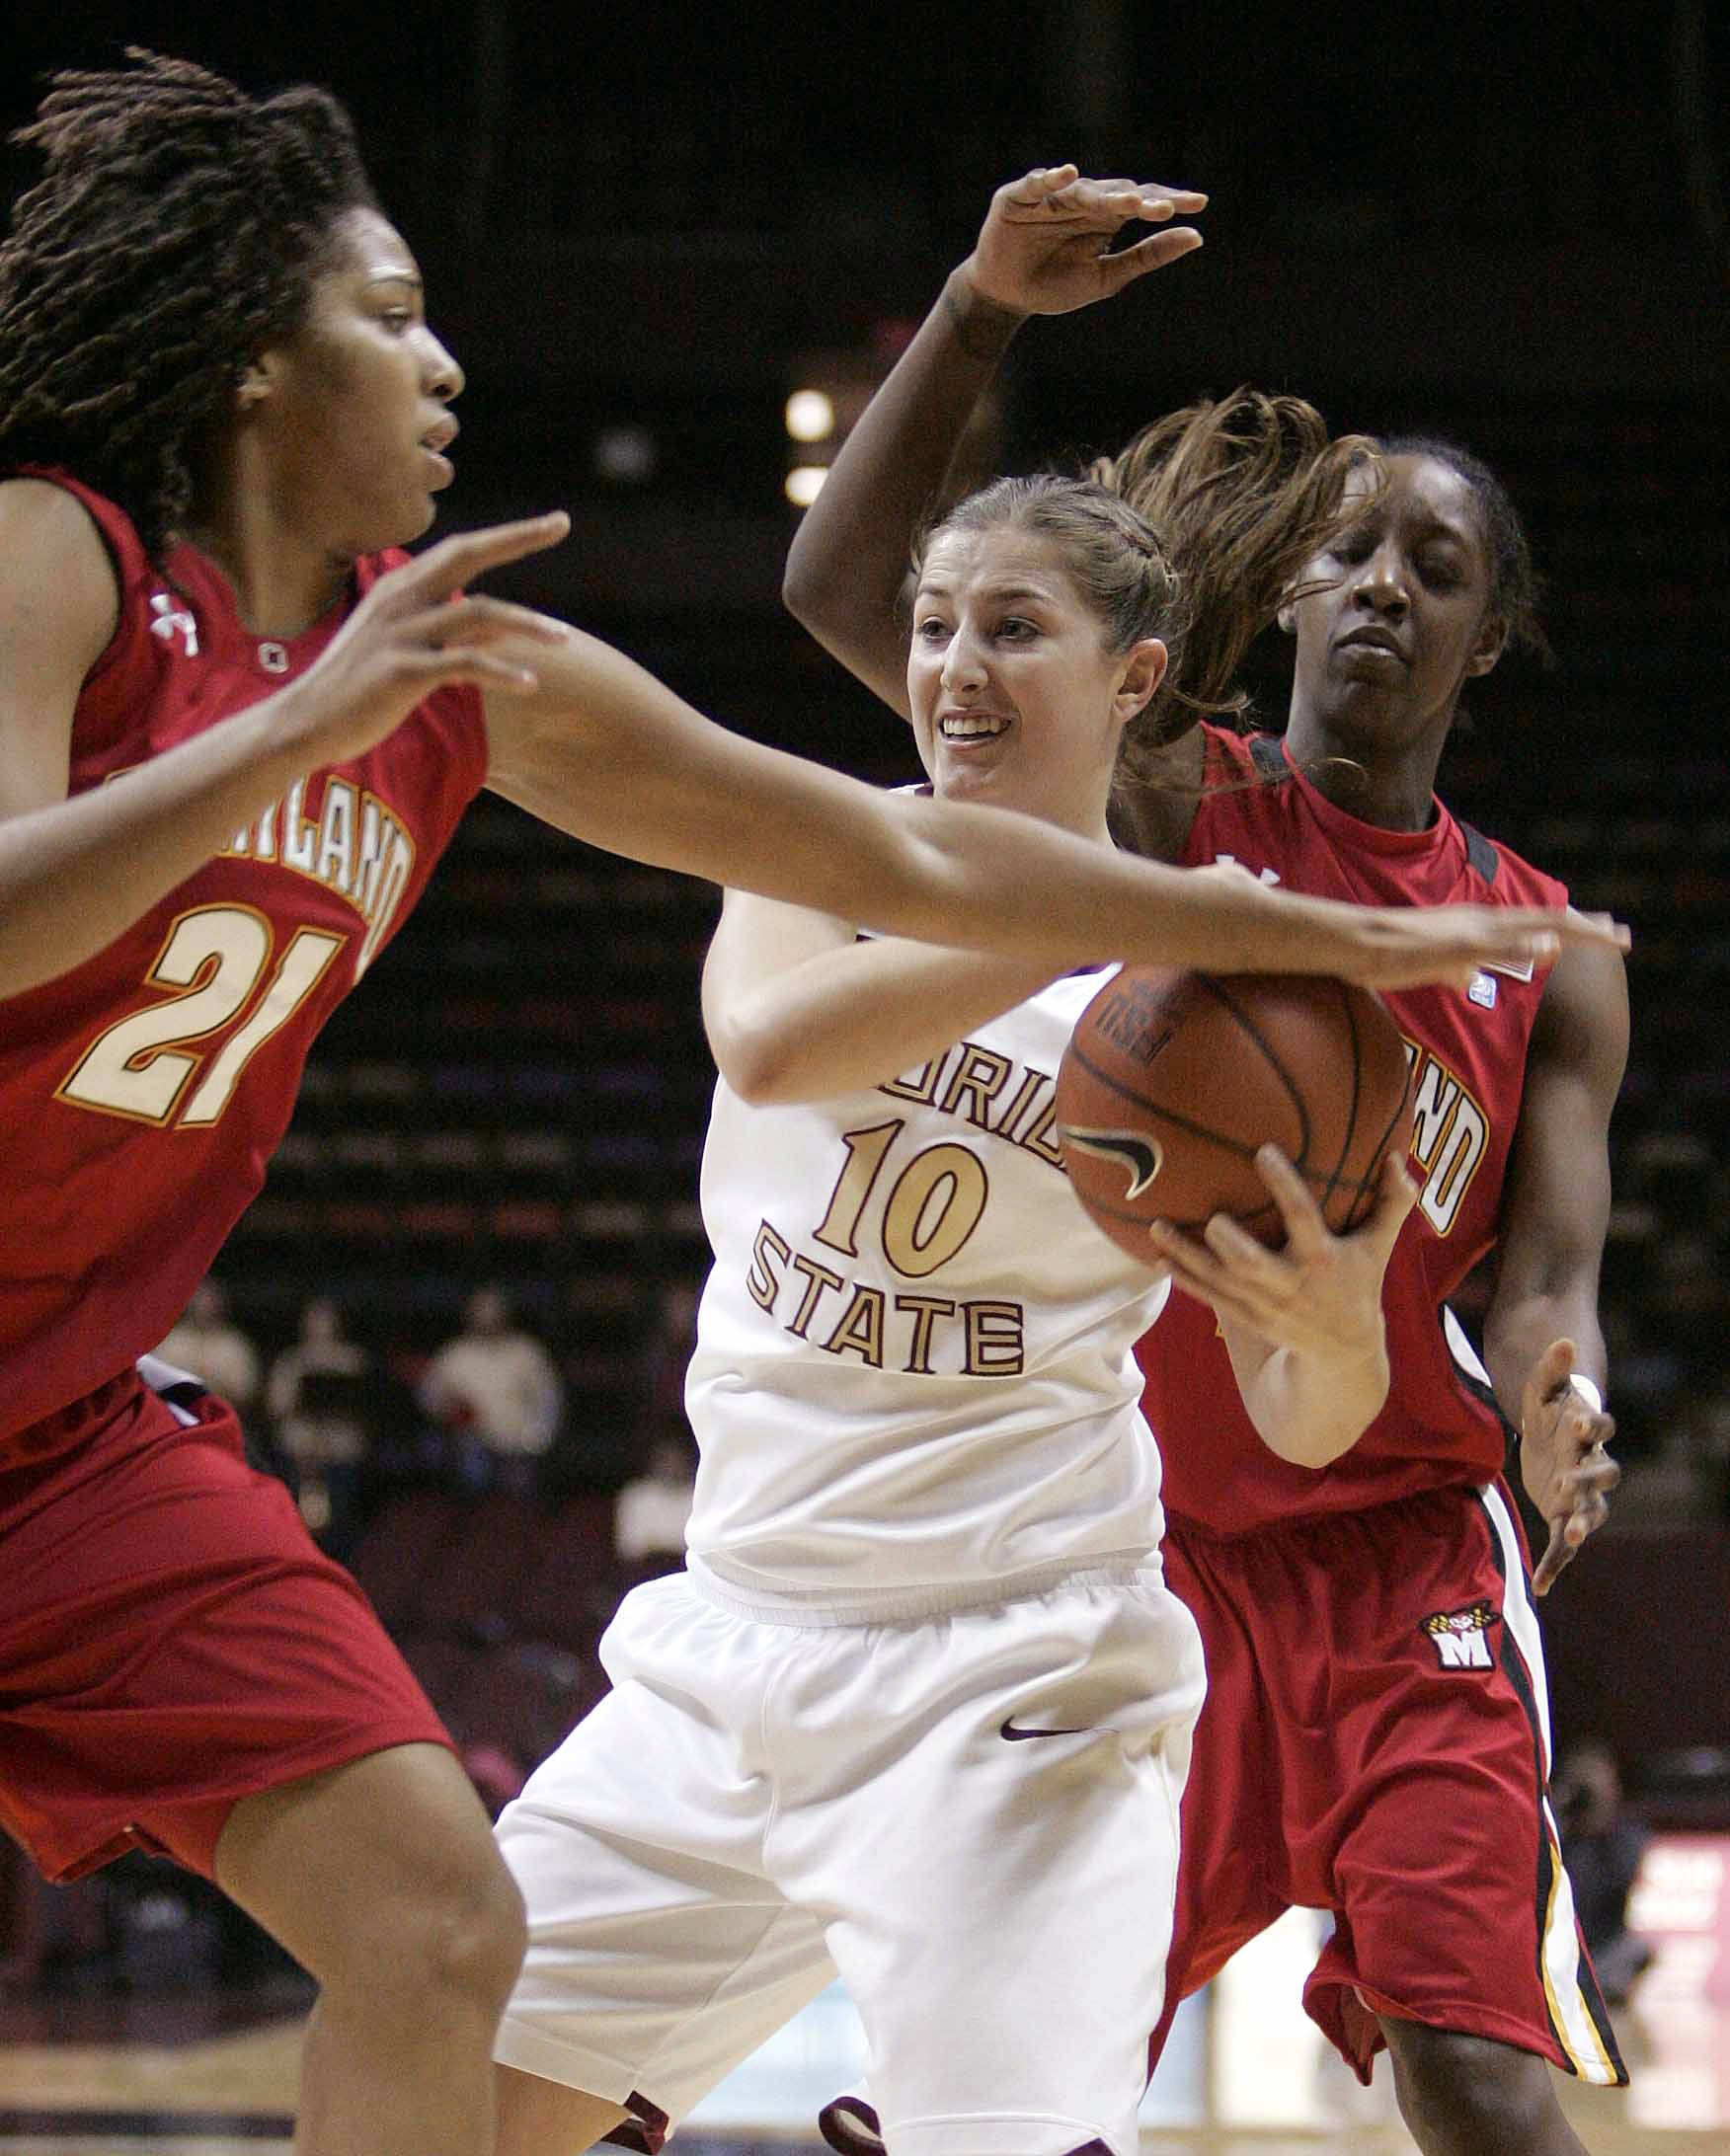 Florida State's Leonor Rodriguez protects the ball from Maryland's Tiana Hawkins, left and Laurin Mincy in the first half of an NCAA college basketball game Monday, Jan. 2, 2012, in Tallahassee, Fla. (AP Photo/Steve Cannon)